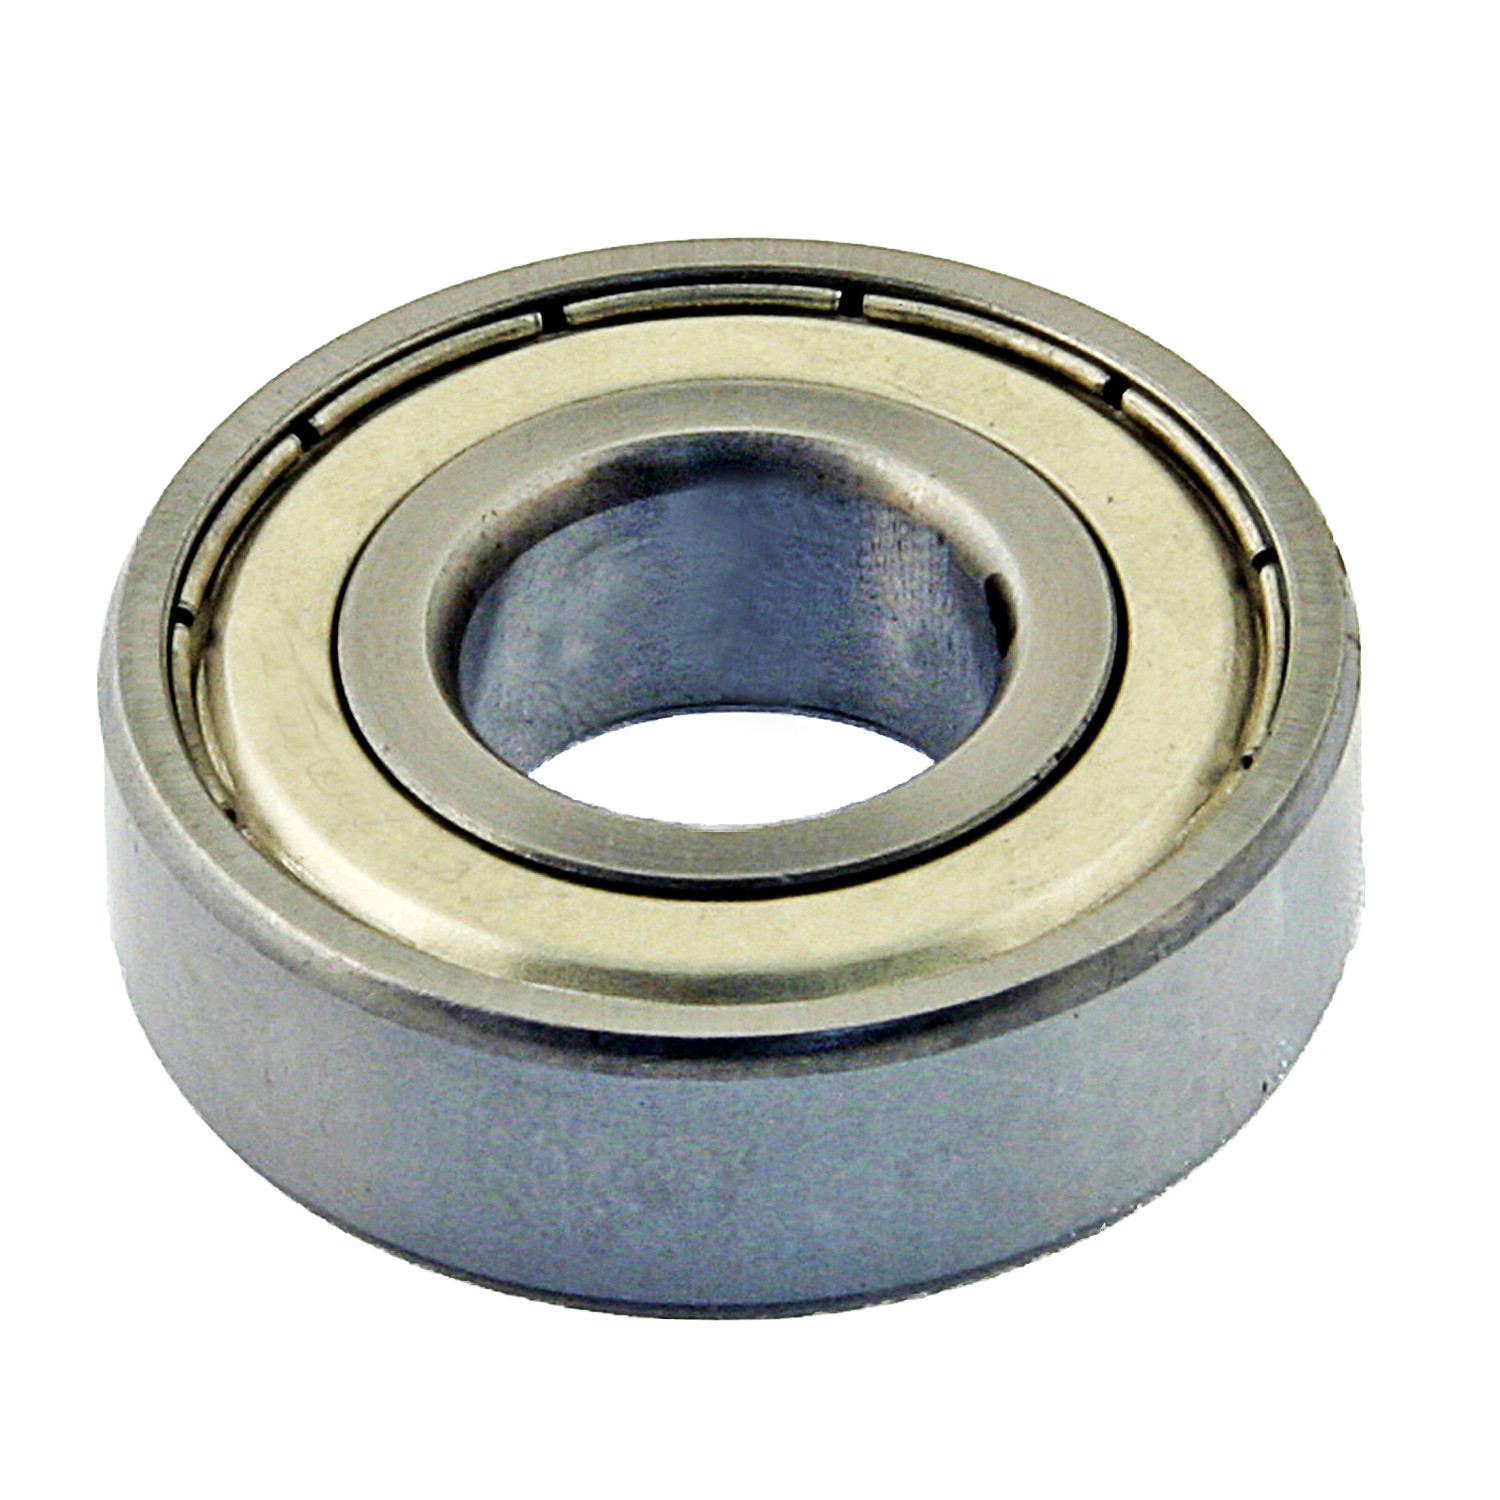 PRECISION AUTOMOTIVE INDUSTRIES - Alternator Bearing - PAU 203S